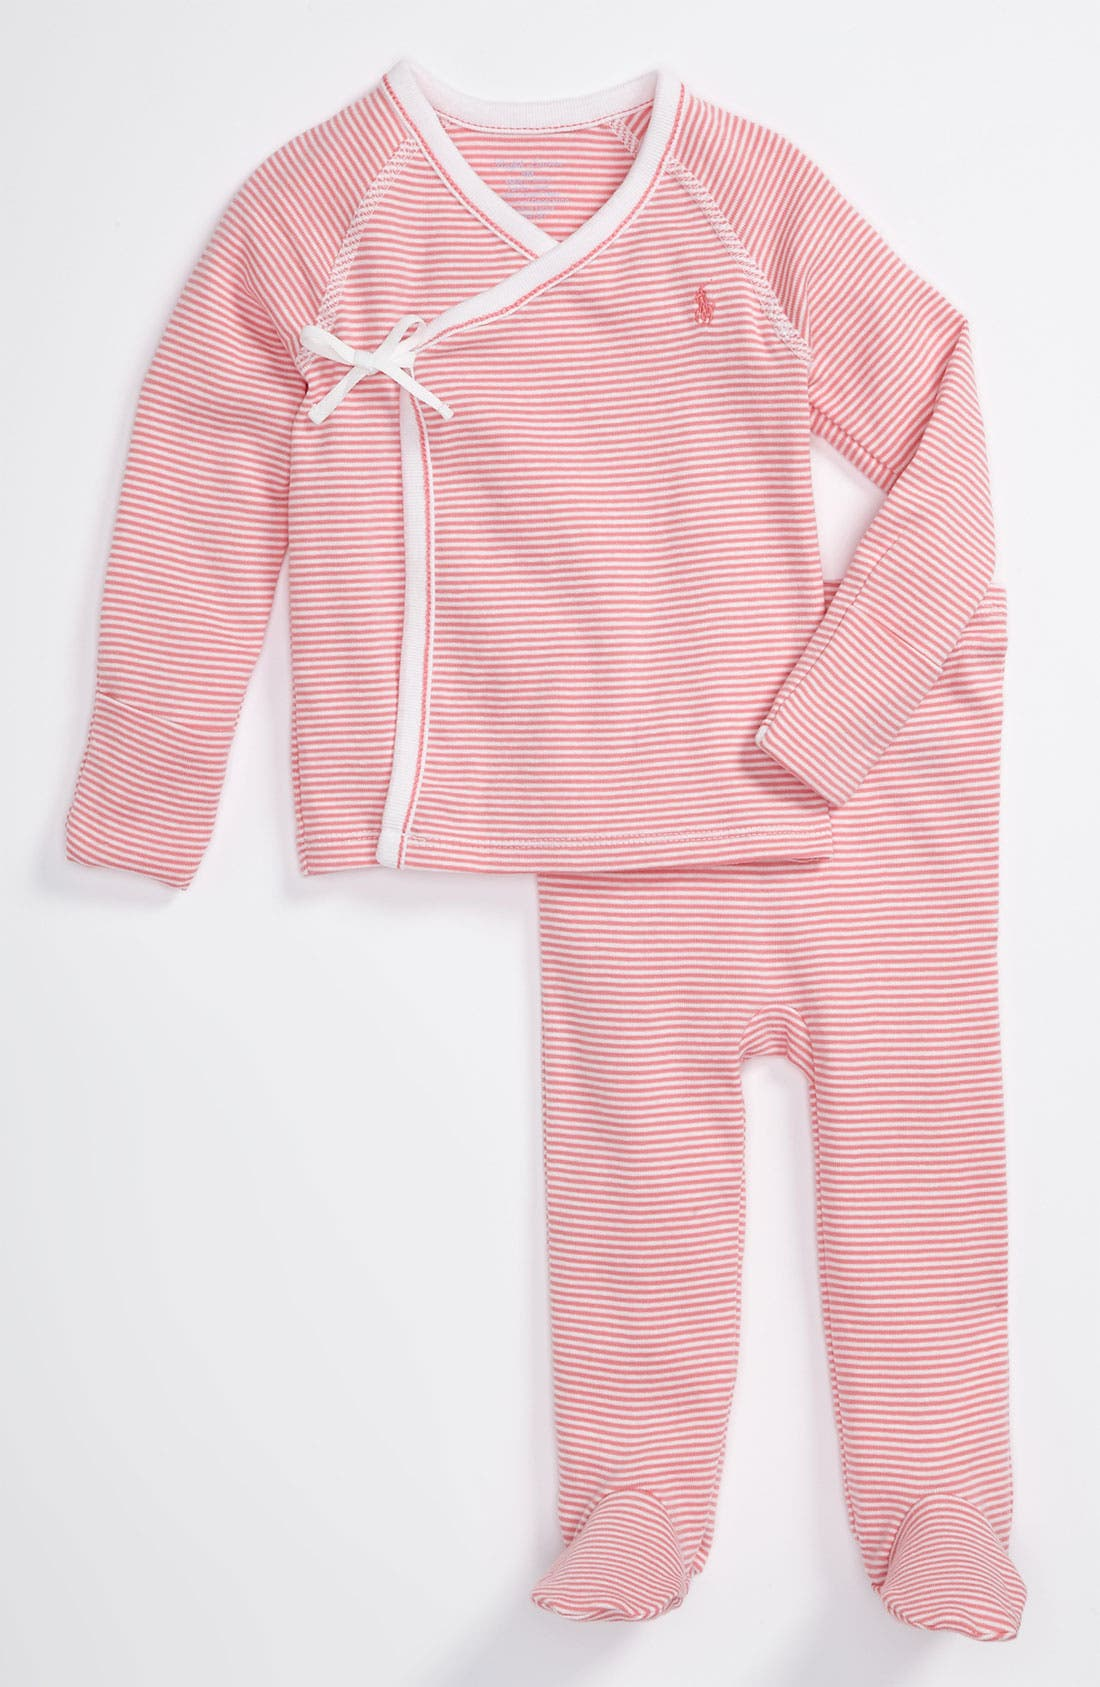 Main Image - Ralph Lauren Stripe Top & Footed Pants Set (Baby)